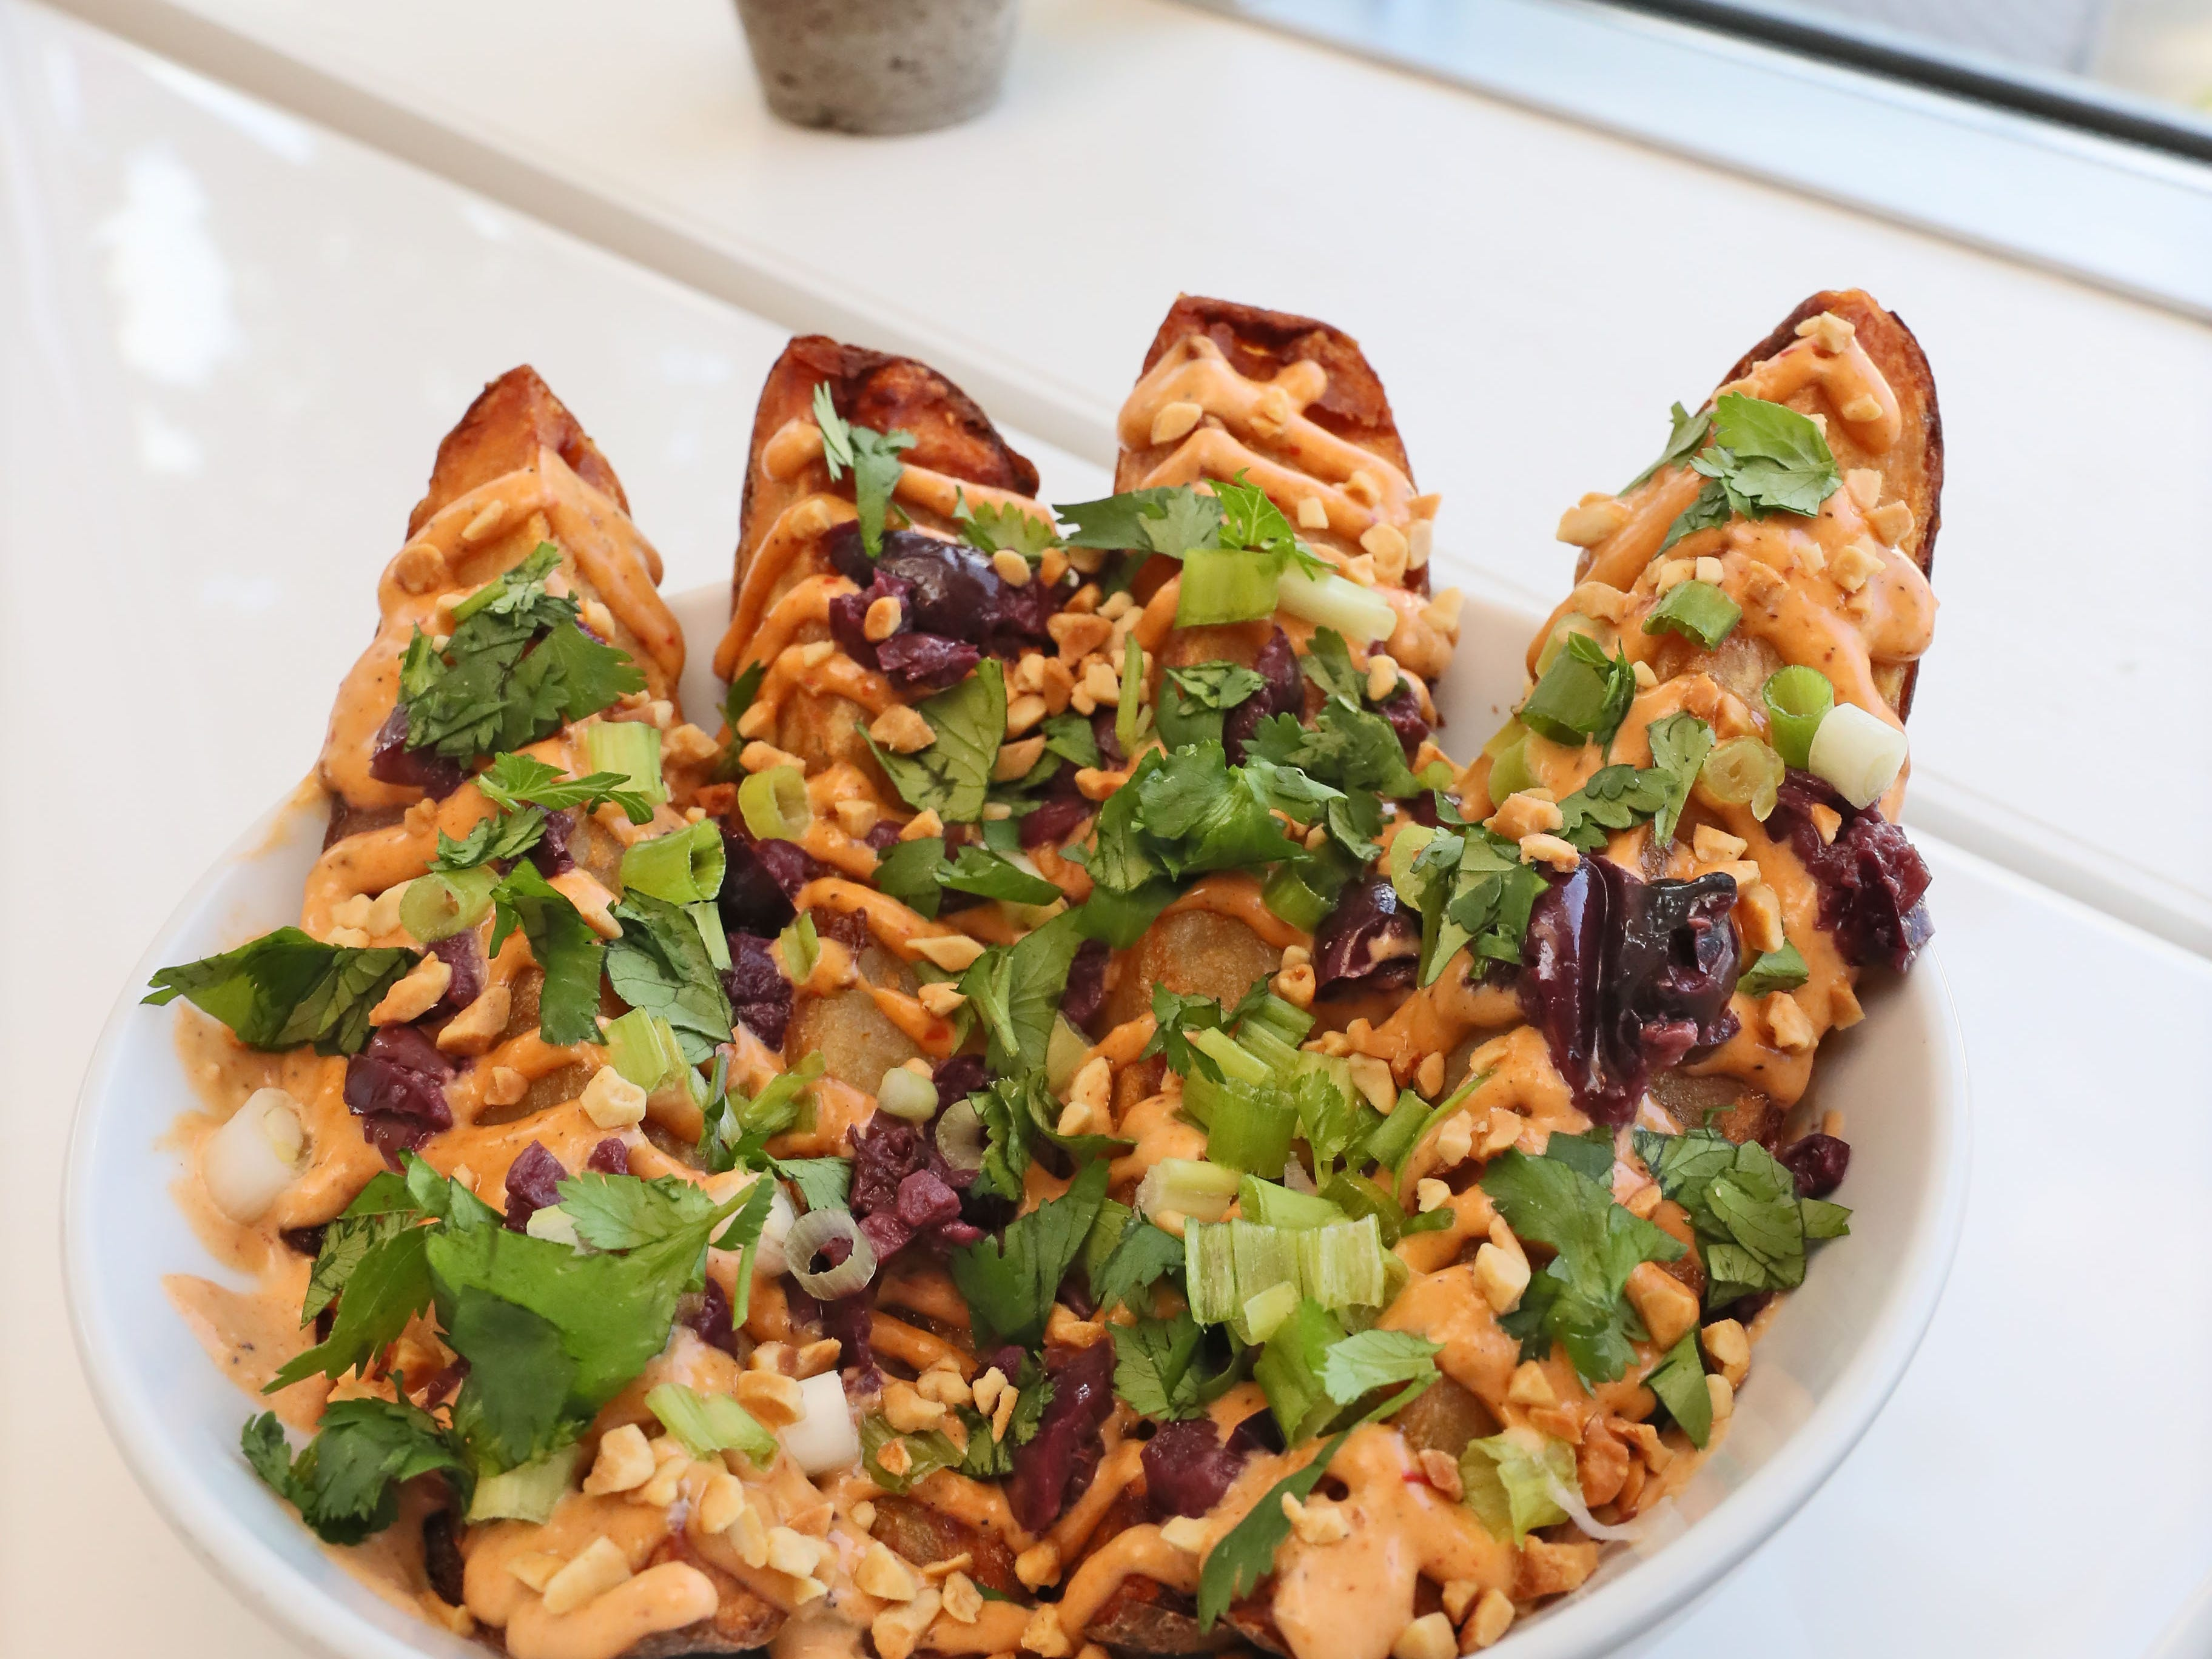 Celesta, a vegan restaurant at 1978 N. Farwell Avenue, offers a shareable plate of Lima fries, garnished in remoulade, green onion, cilantro, peanuts and olives.